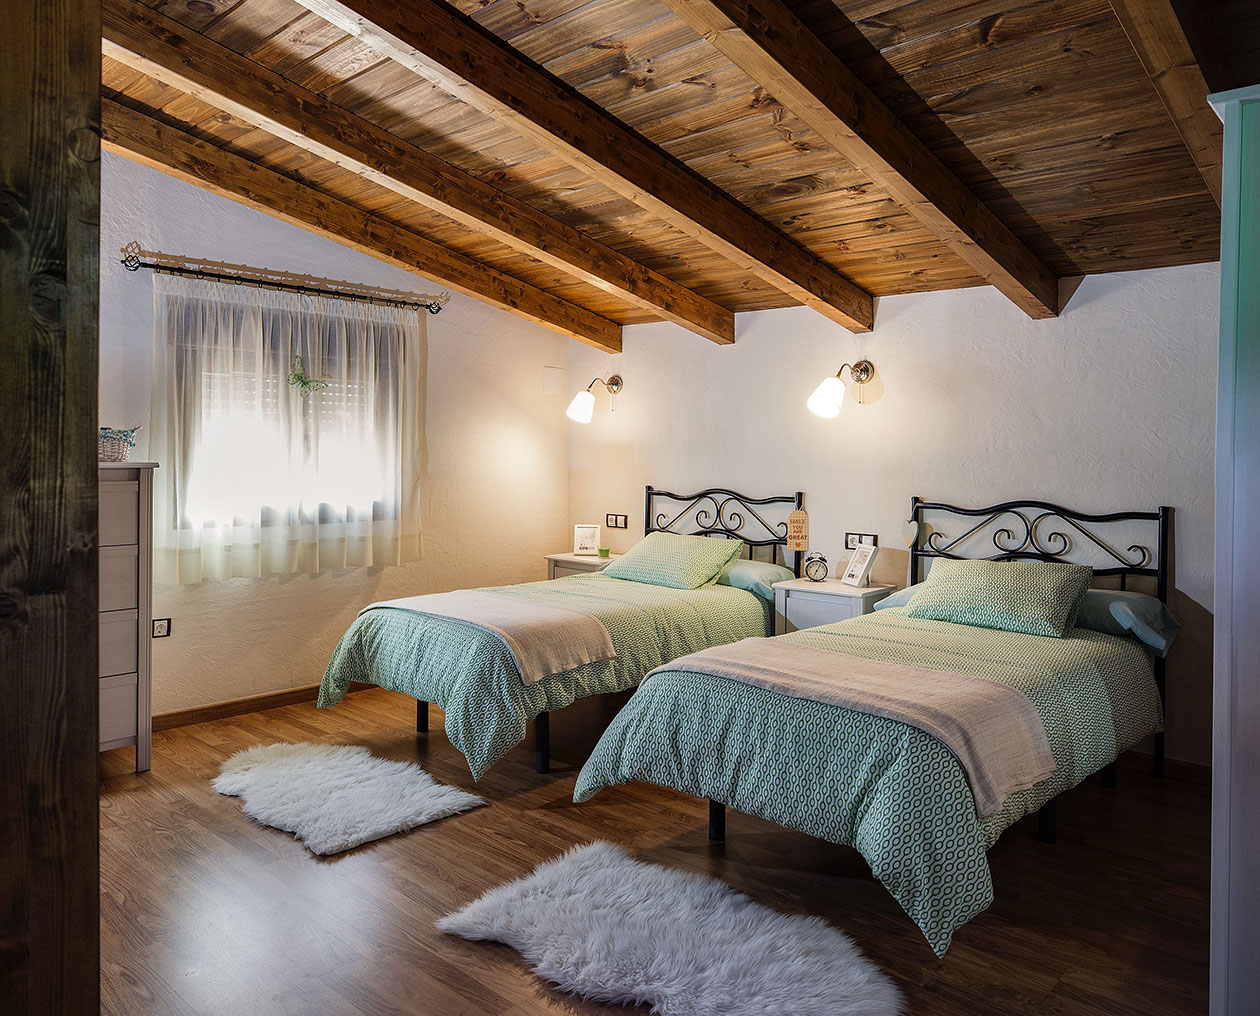 Bedroom with two beds ideal for guests or children, ceilings and wooden parquet